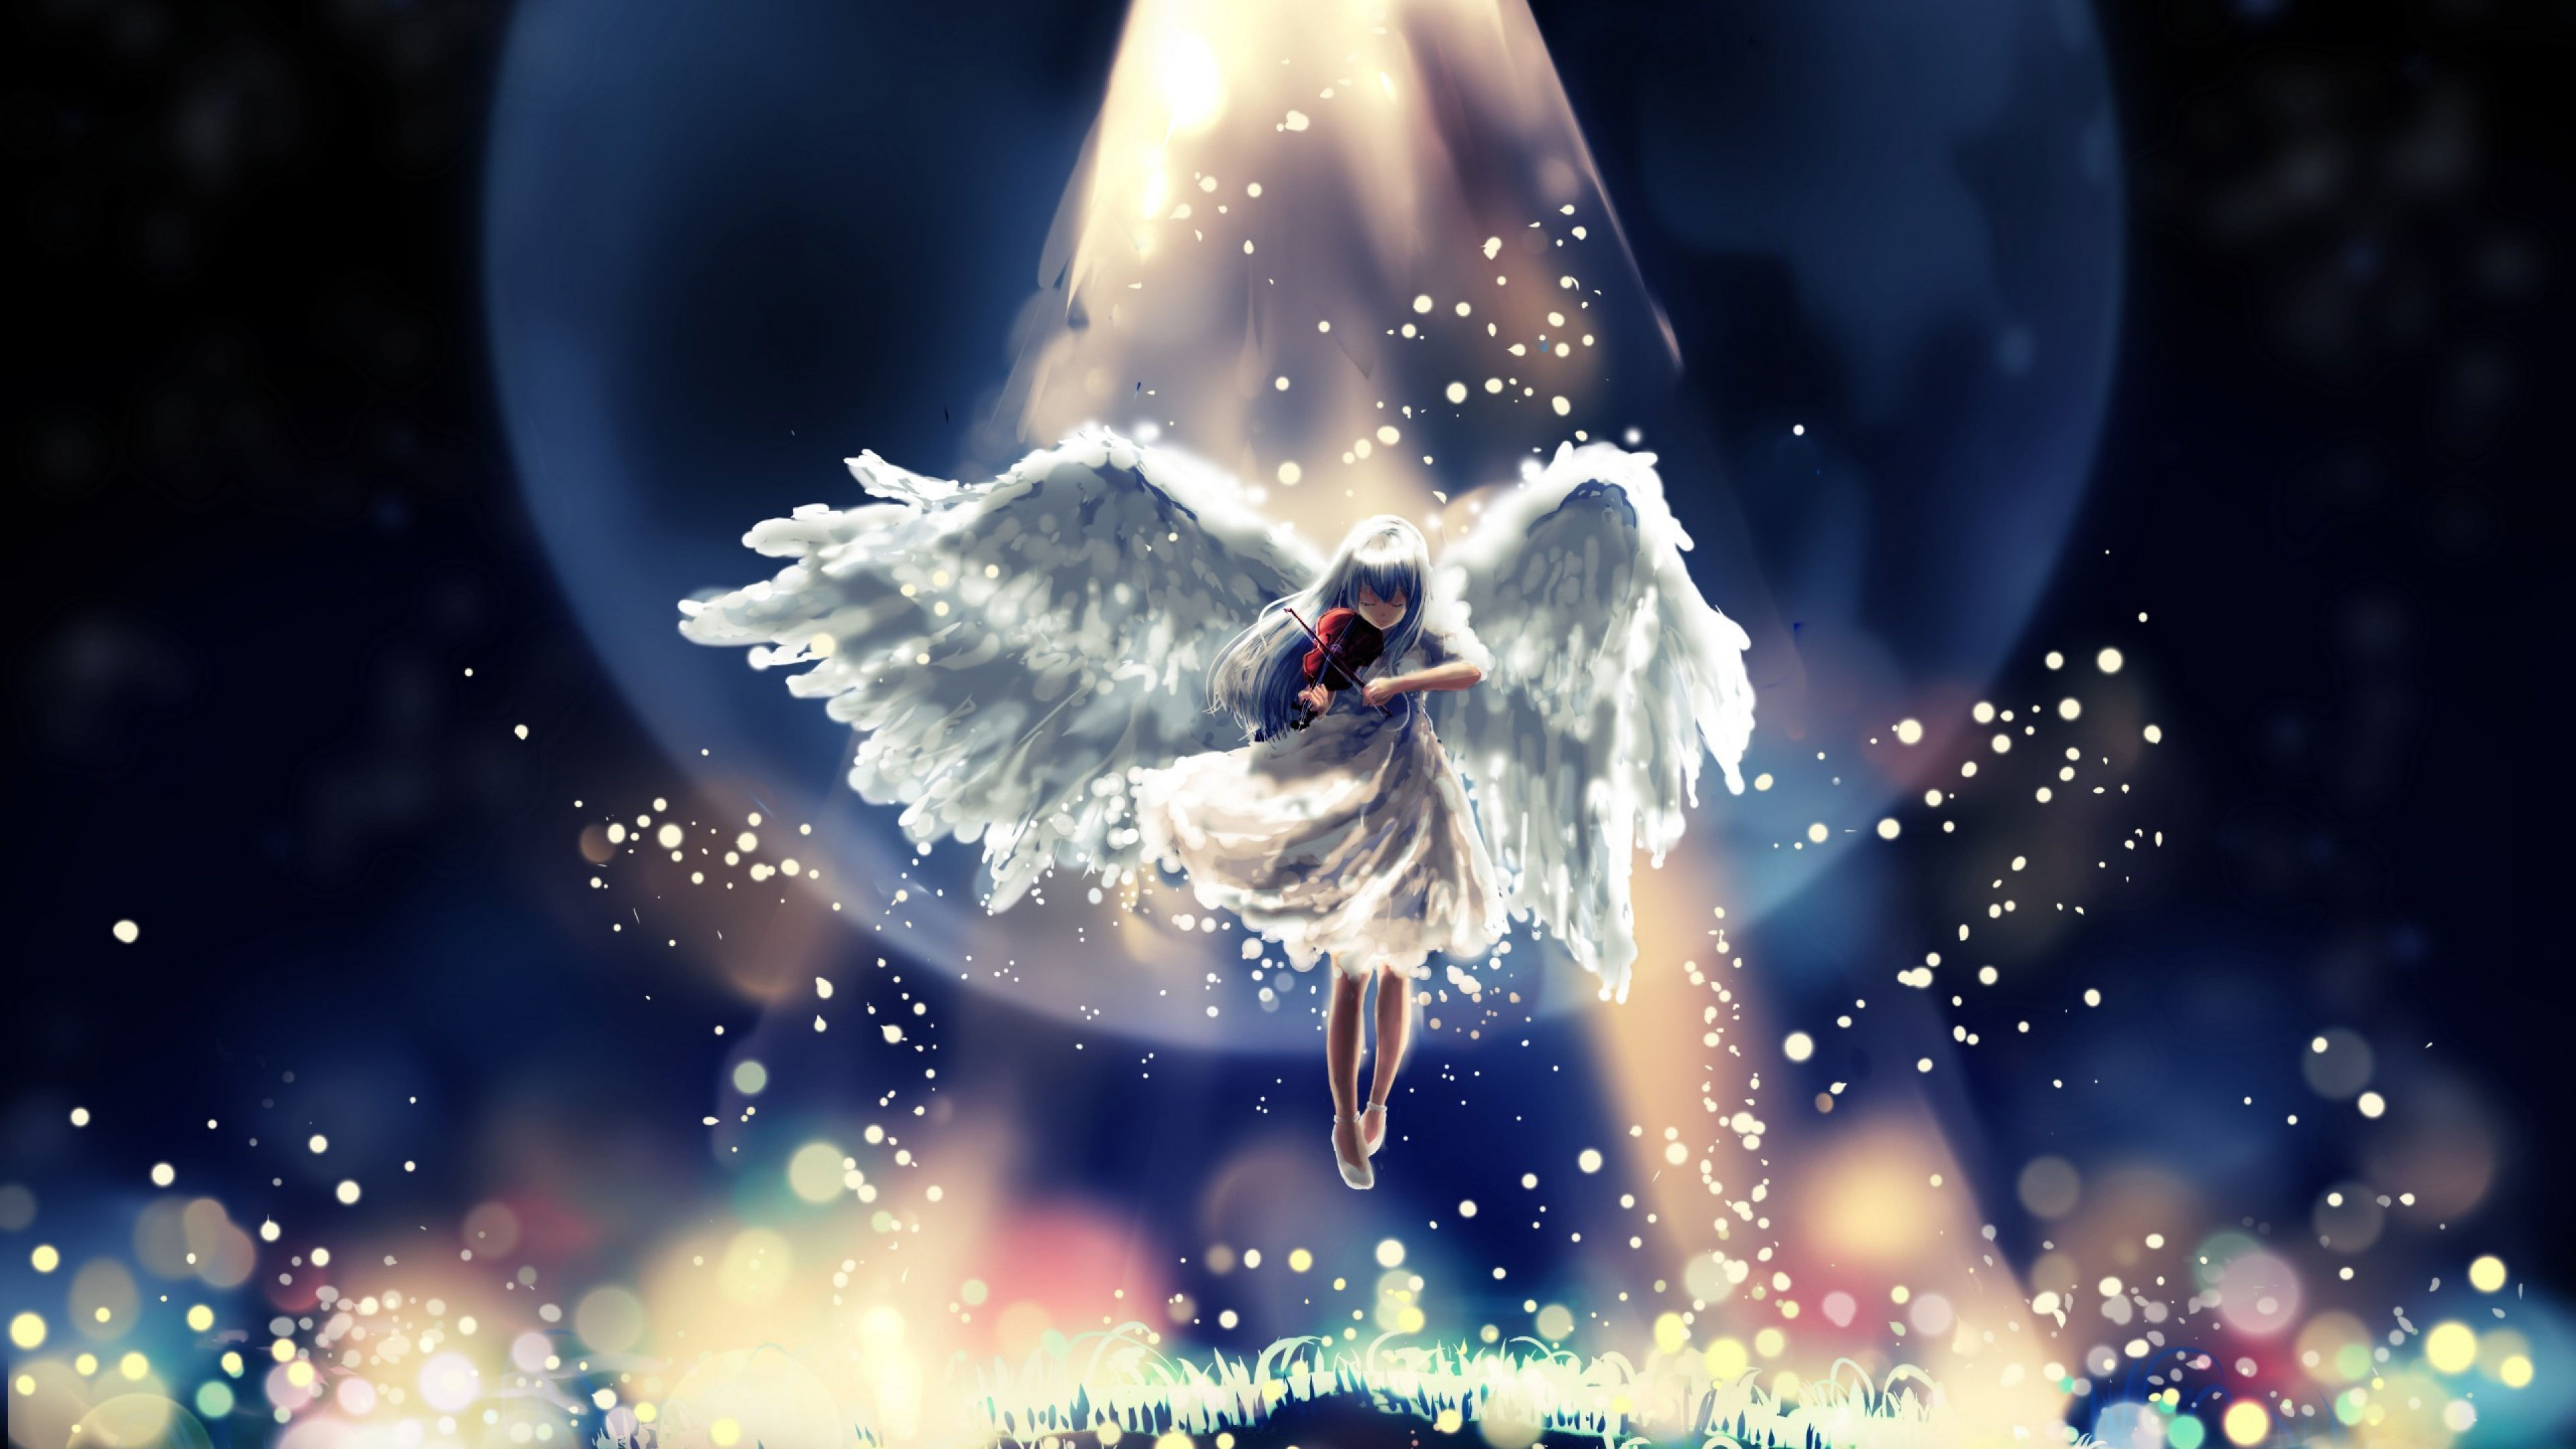 angel wings hd anime 4k wallpapers images backgrounds